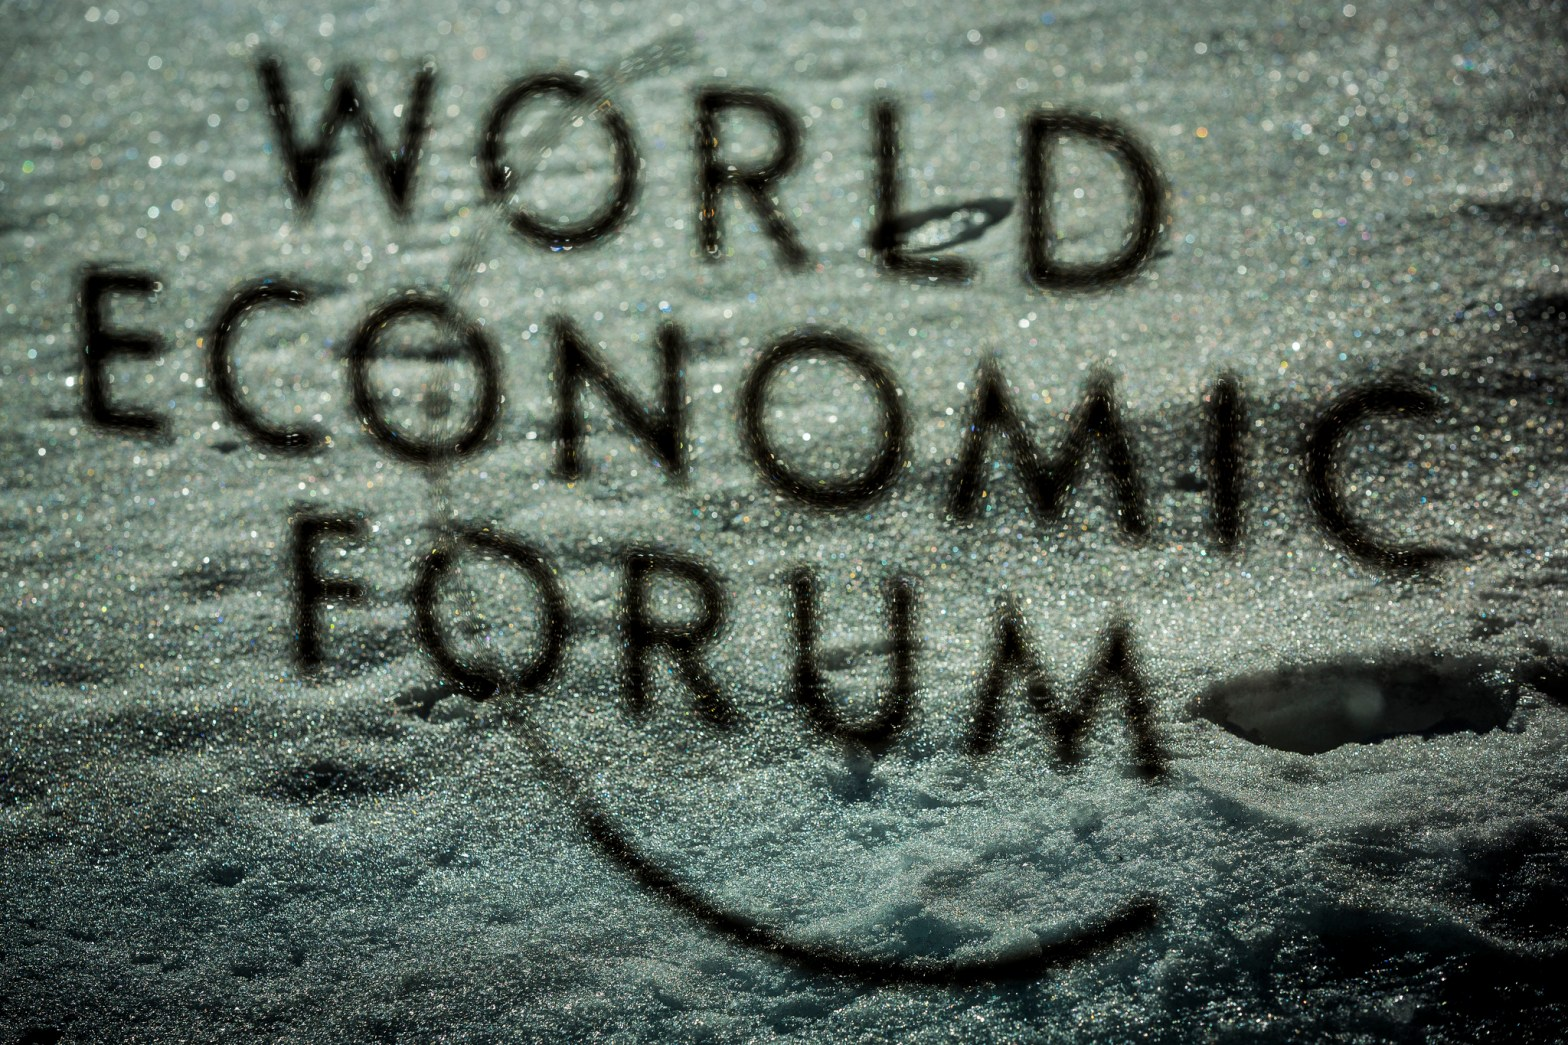 The Logo of the World Economic Forum the Annual Meeting 2019 of the World Economic Forum in Davos, January 25, 2019 Copyright by World Economic Forum / Benedikt von Loebell